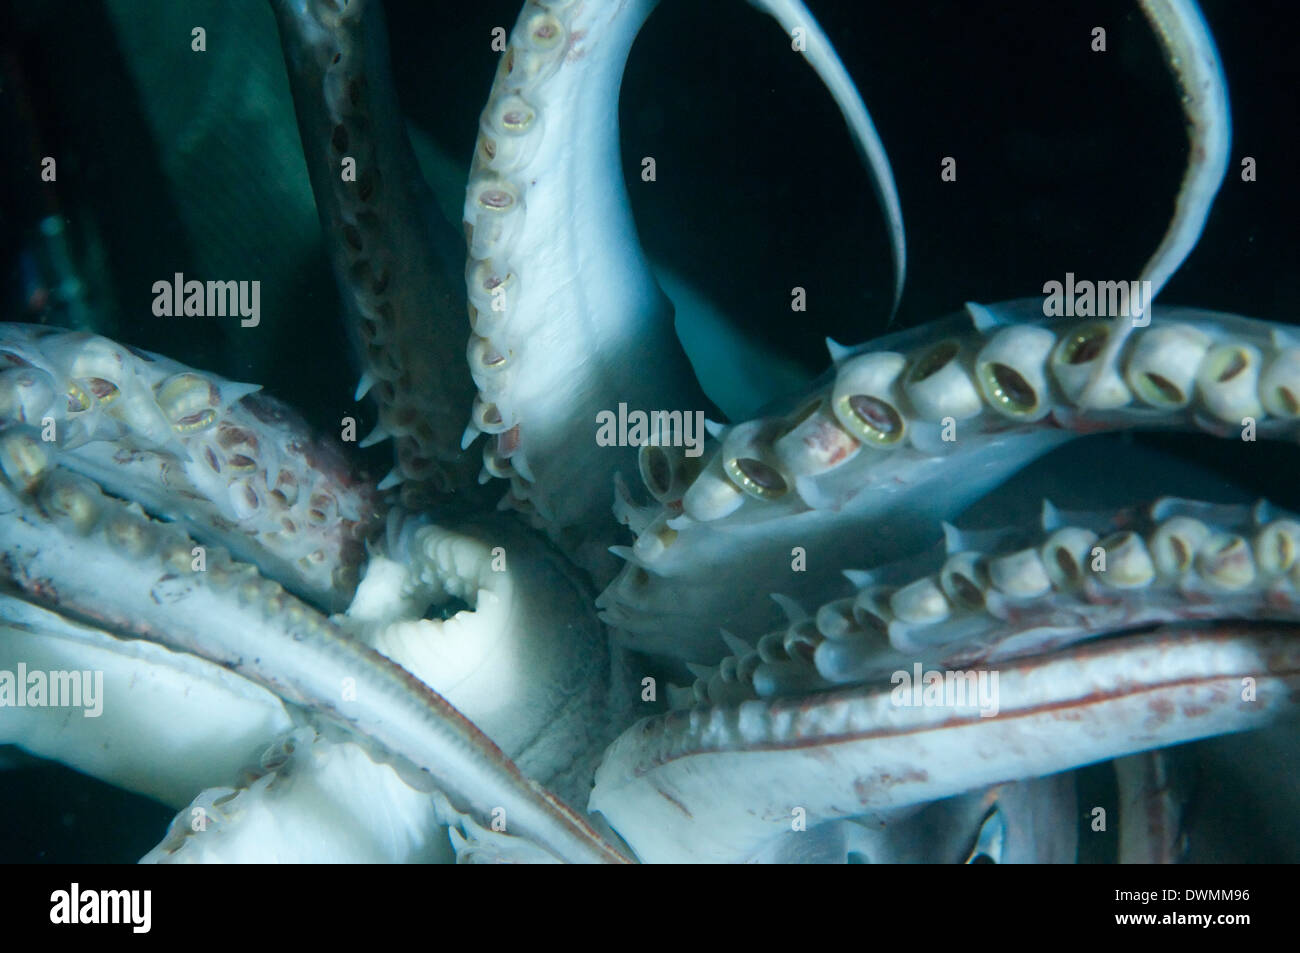 Buccal cavity (mouth) and tentacles of Humboldt (Jumbo) squid (Dosidicus gigas), Gulf of California, Baja California, Mexico - Stock Image